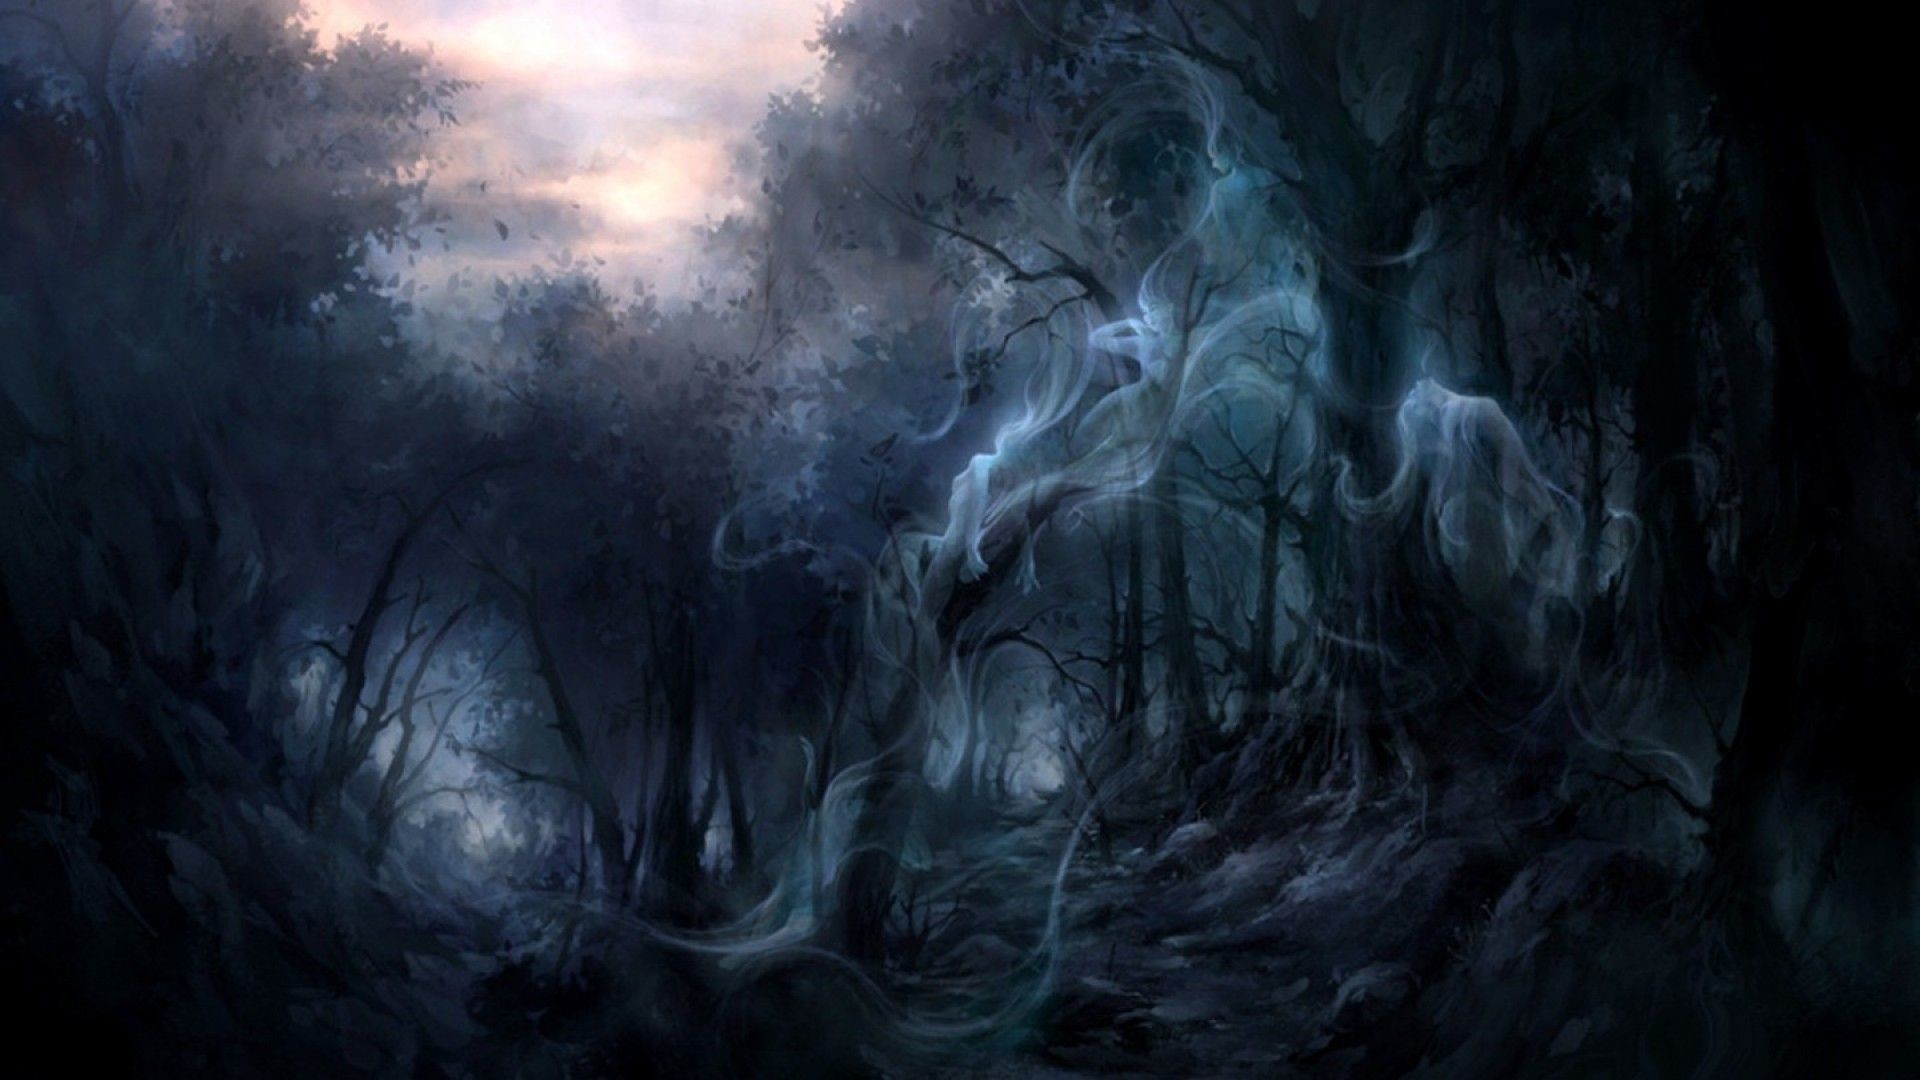 1920x1080 Dark-Forest-1920×1080-Creepy-Forest-Backgrounds-Adorable-